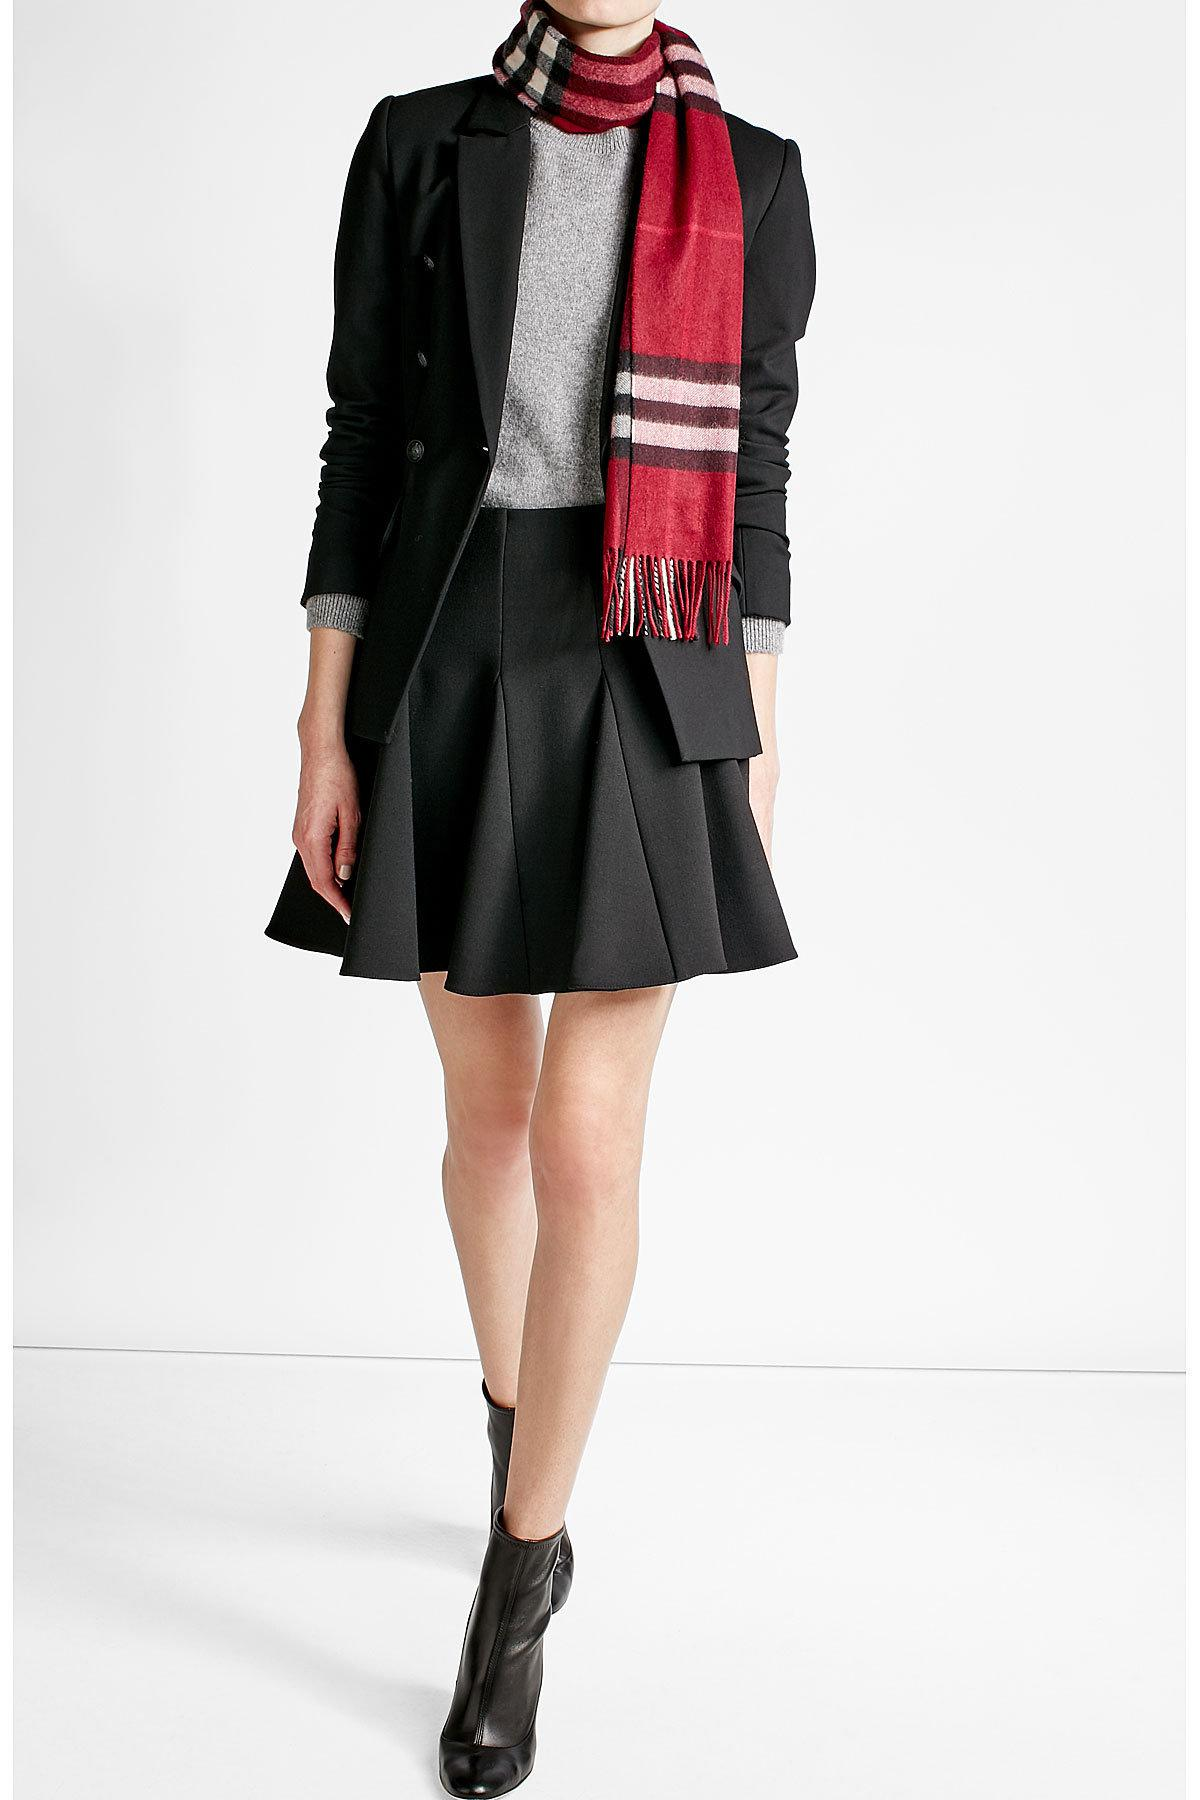 Lyst Burberry Printed Cashmere Scarf